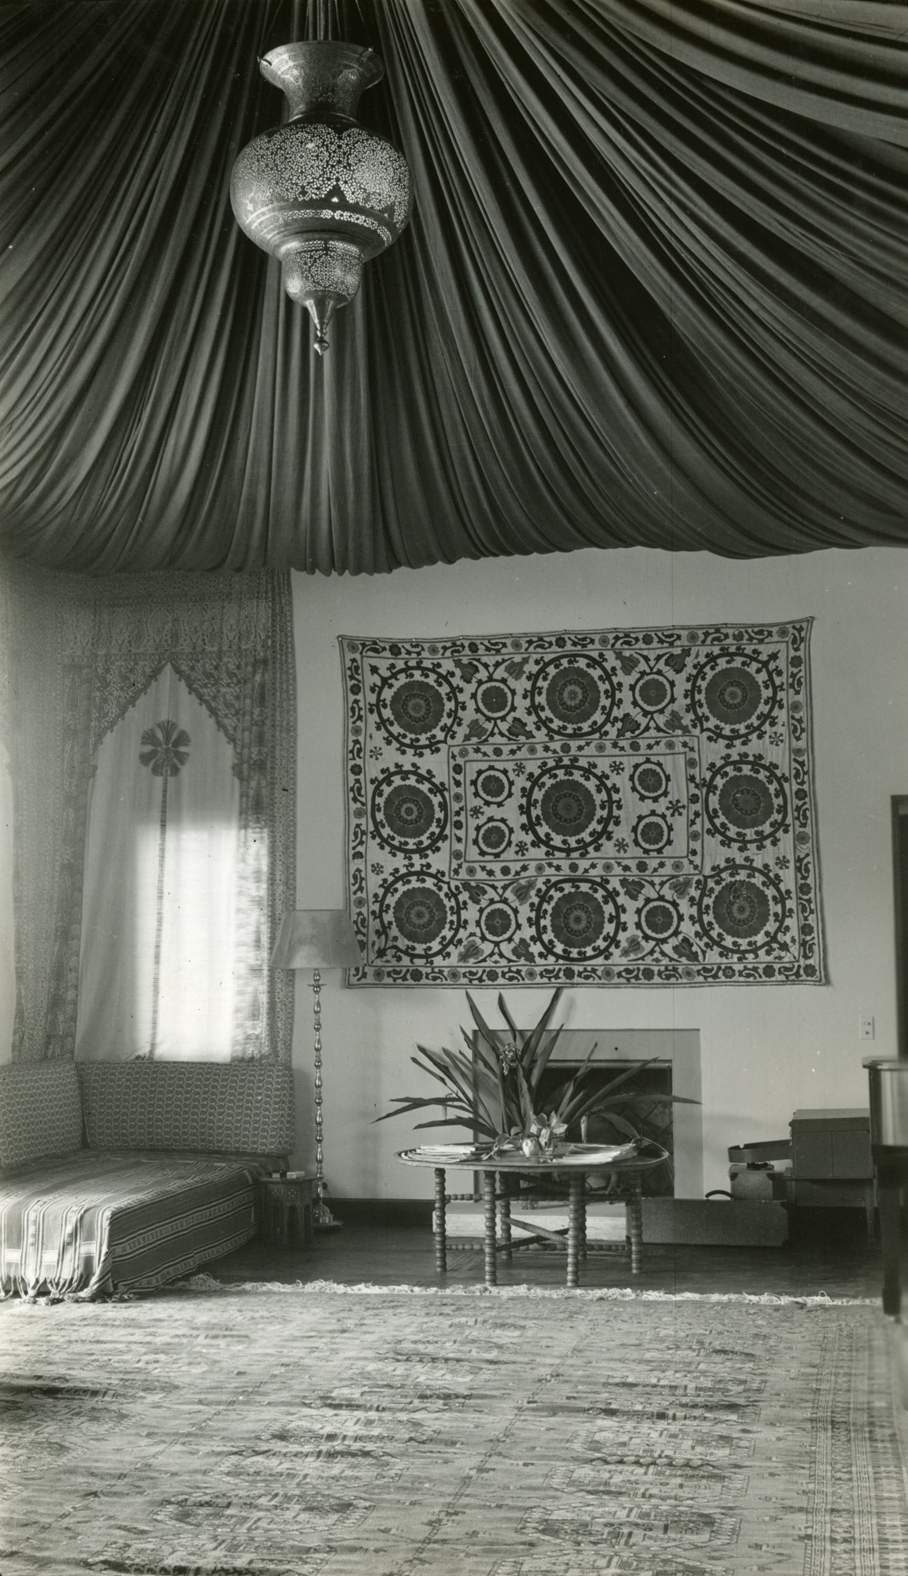 Block-printed curtains from India framed doorways, walls, and windows in the Playhouse to enhance the effect of a tented interior, 1939. Shangri La Historical Archives, Doris Duke Foundation for Islamic Art, Honolulu, Hawai'i.